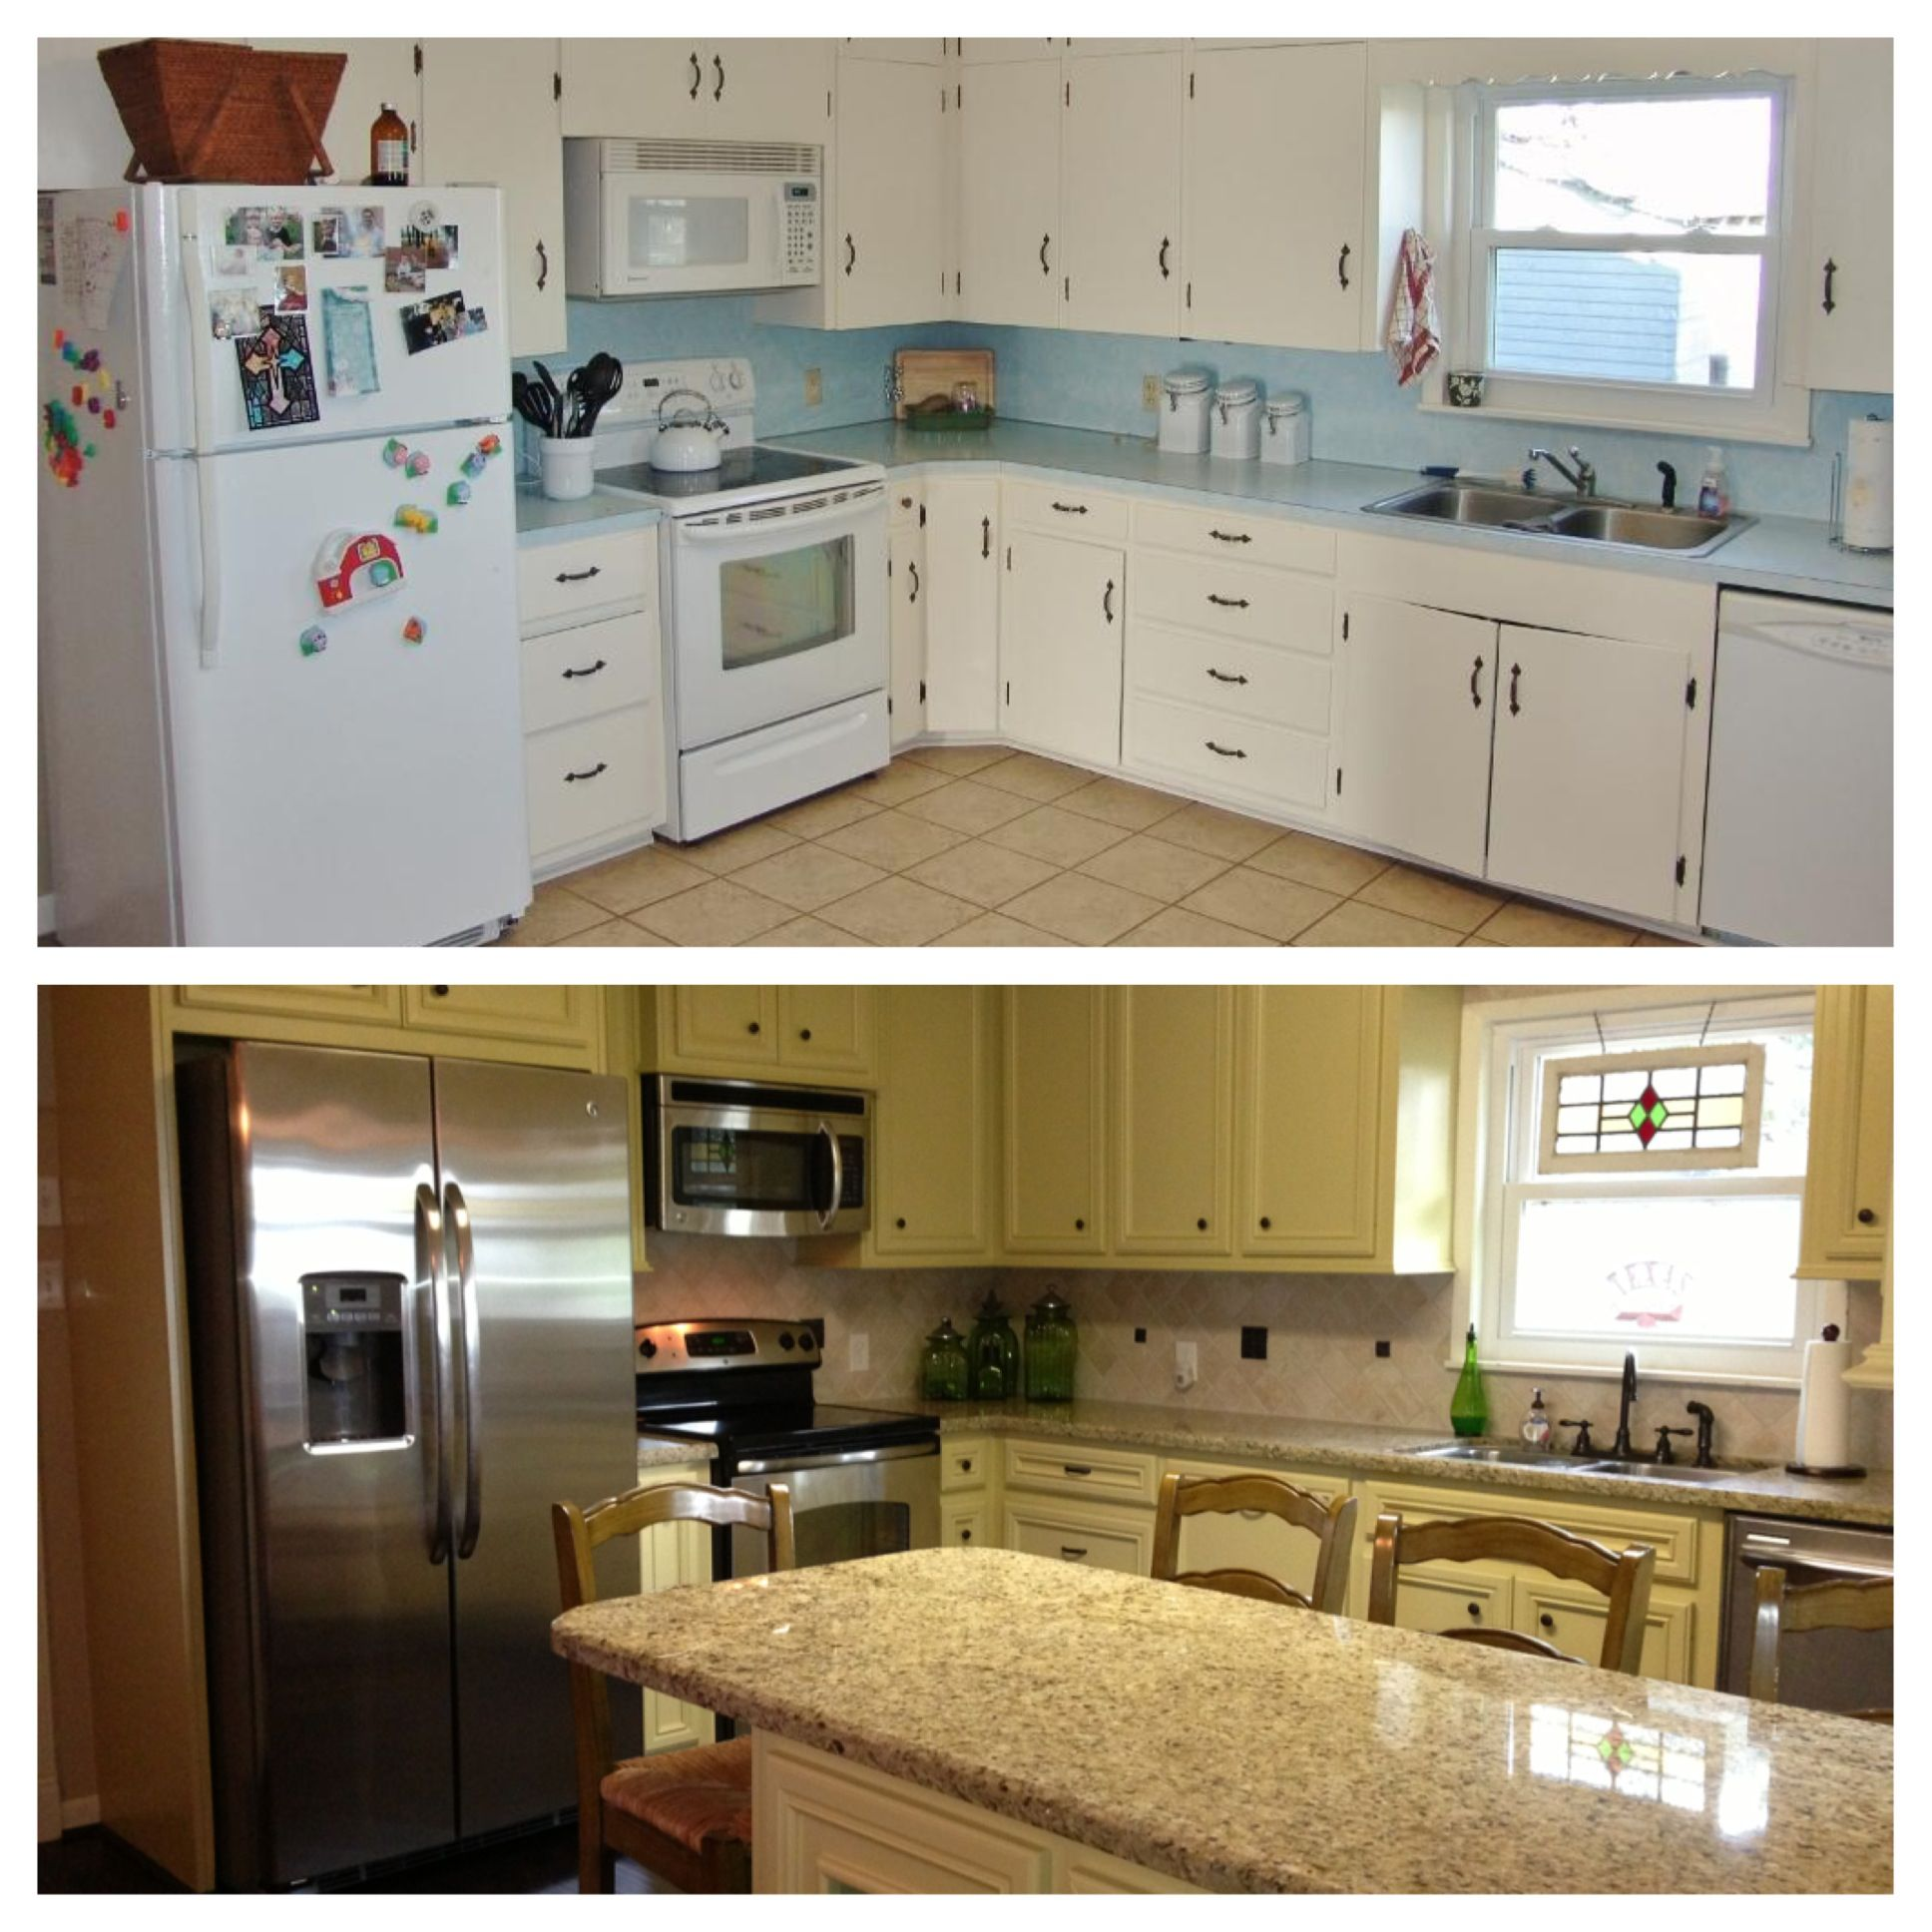 Before and after kitchen remodel kitchen redo pinterest Redo my kitchen